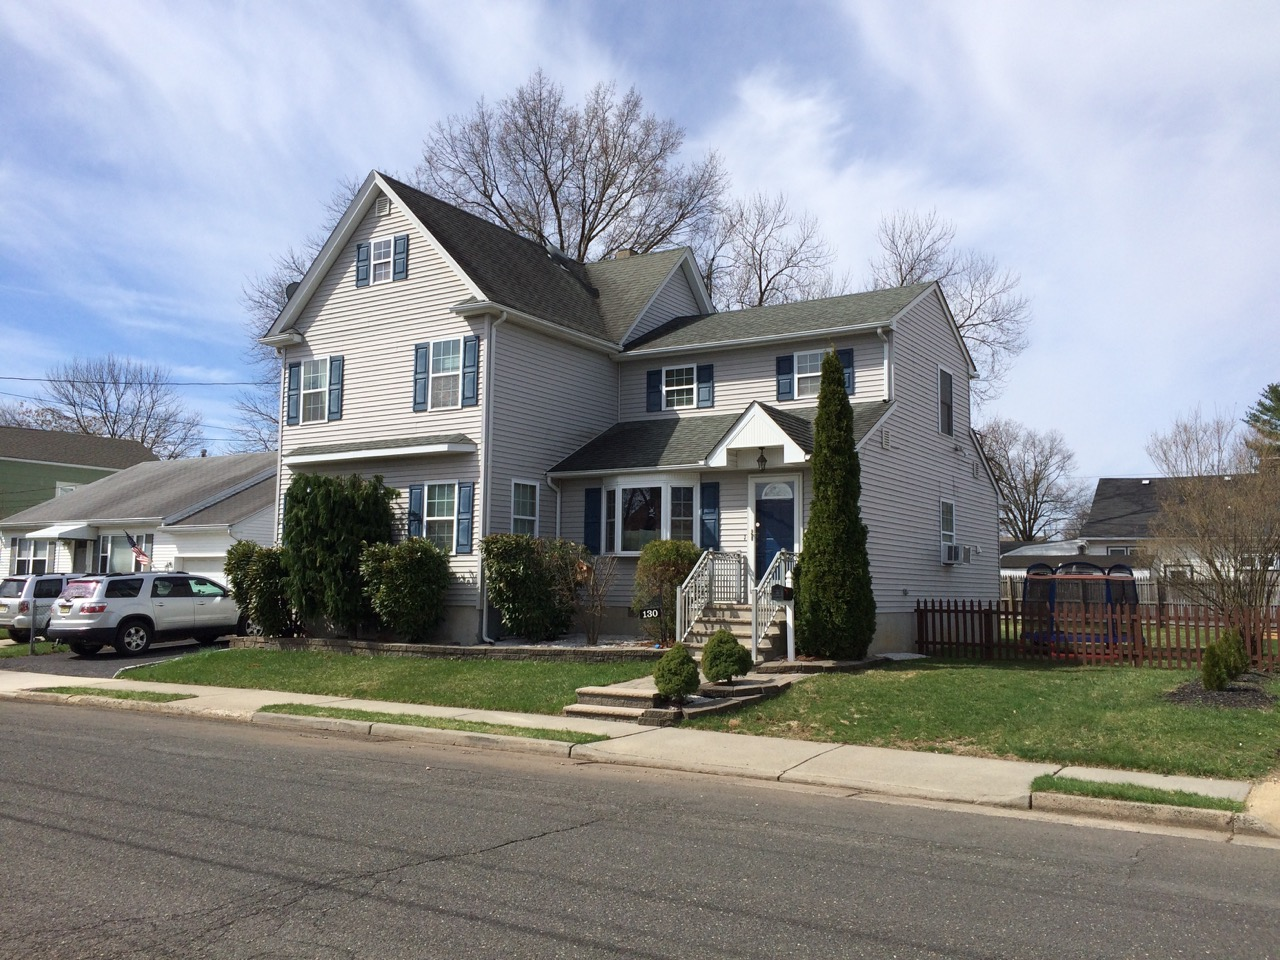 130 S 16TH AVENUE, Manville, New Jersey 08835